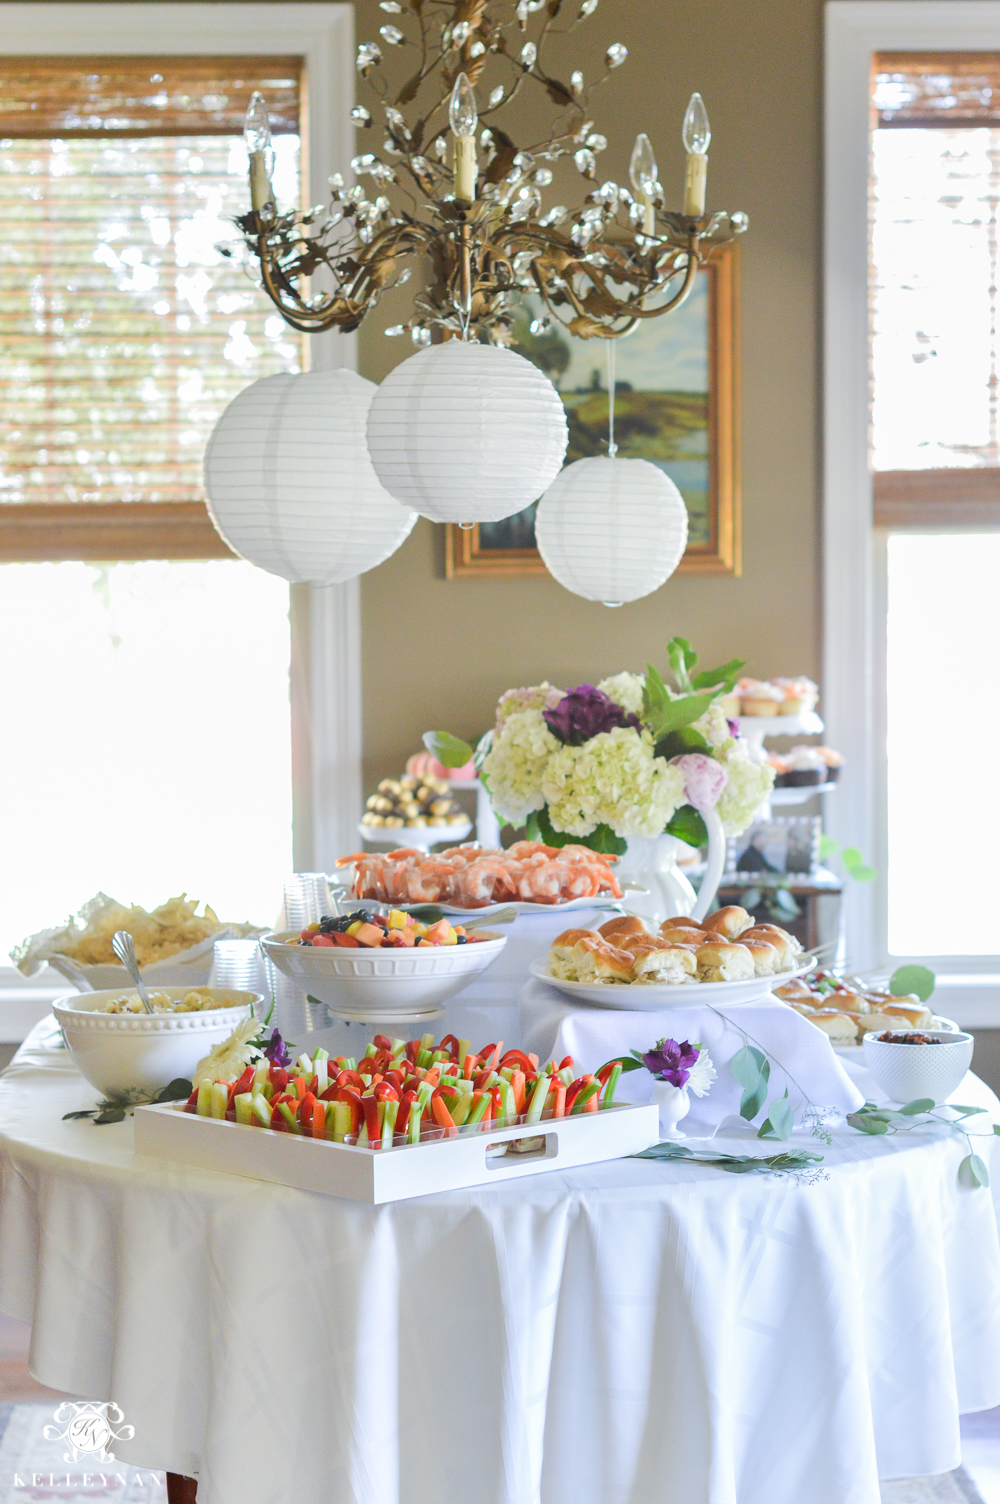 southern garden party bridal shower ideas food table with garden lanterns